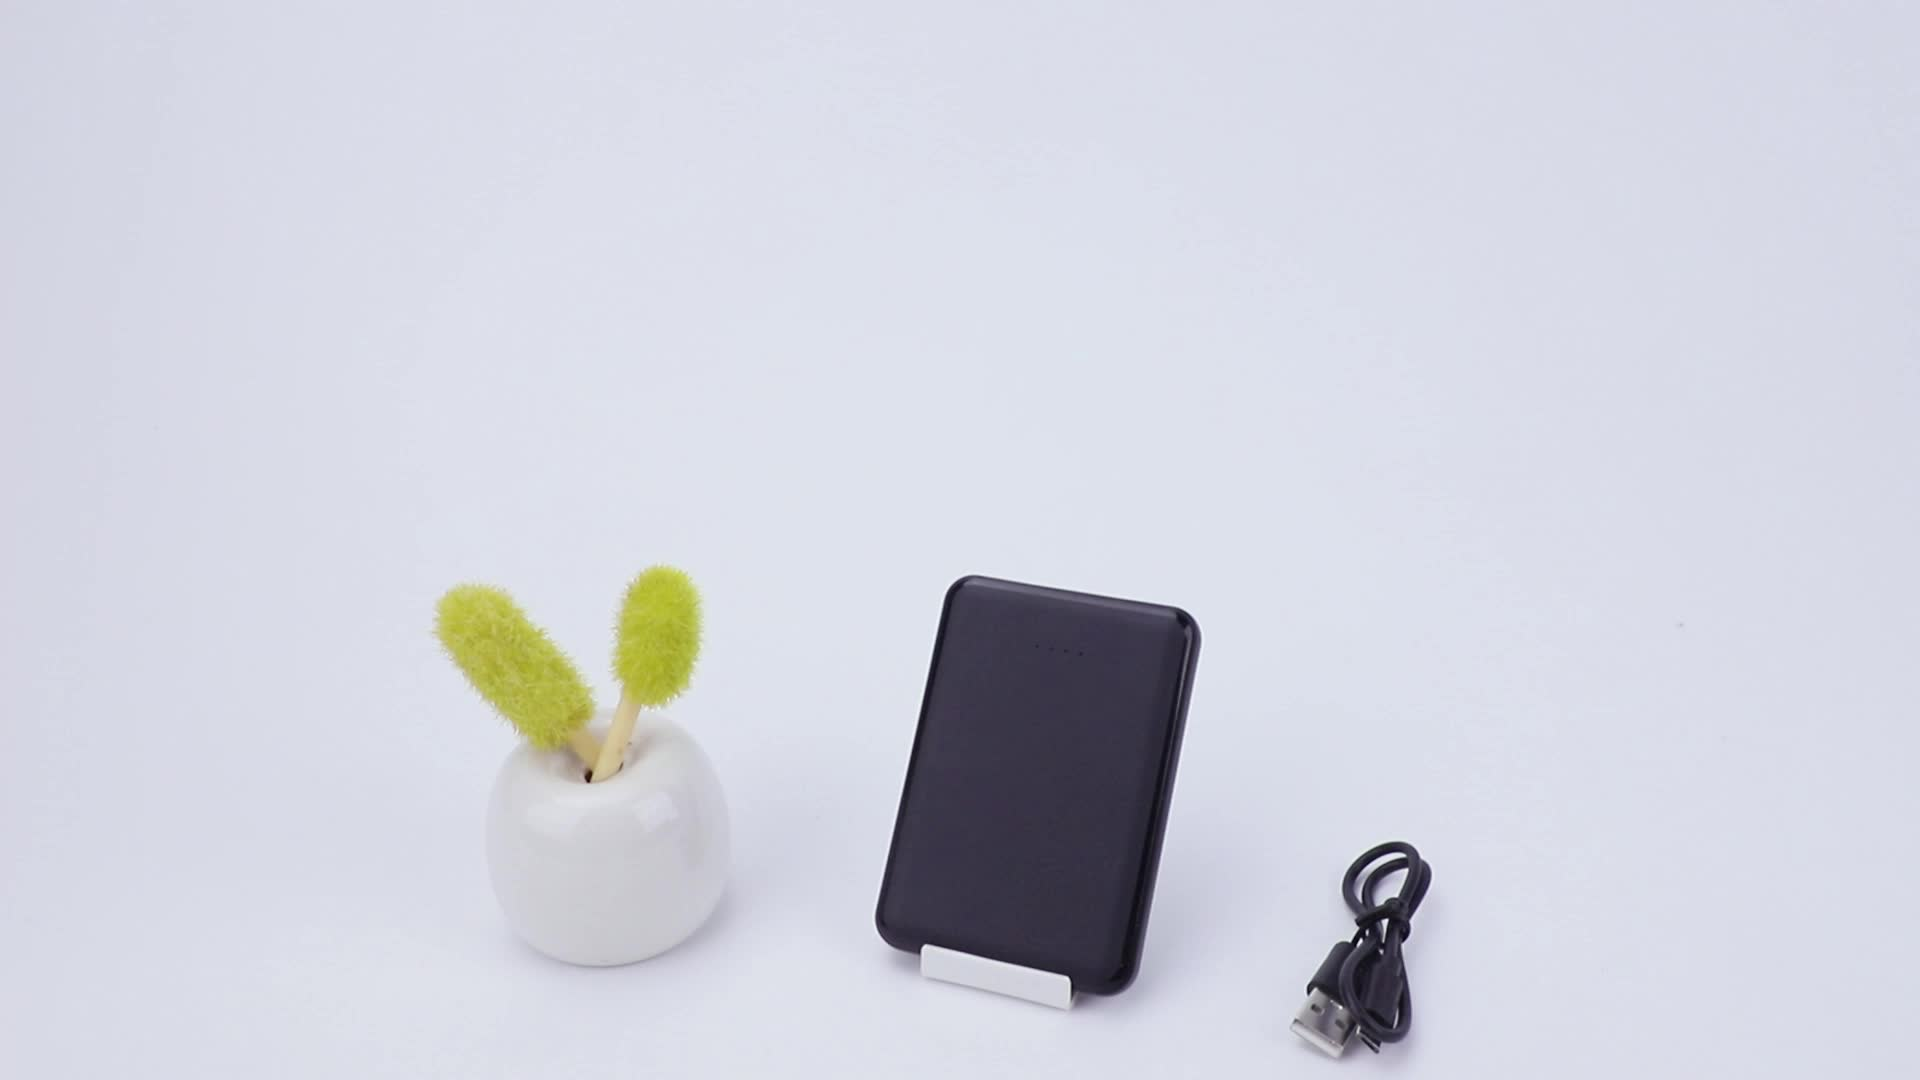 Mini Power Bank 2000mah with Led Backlight Thin Portable Charger